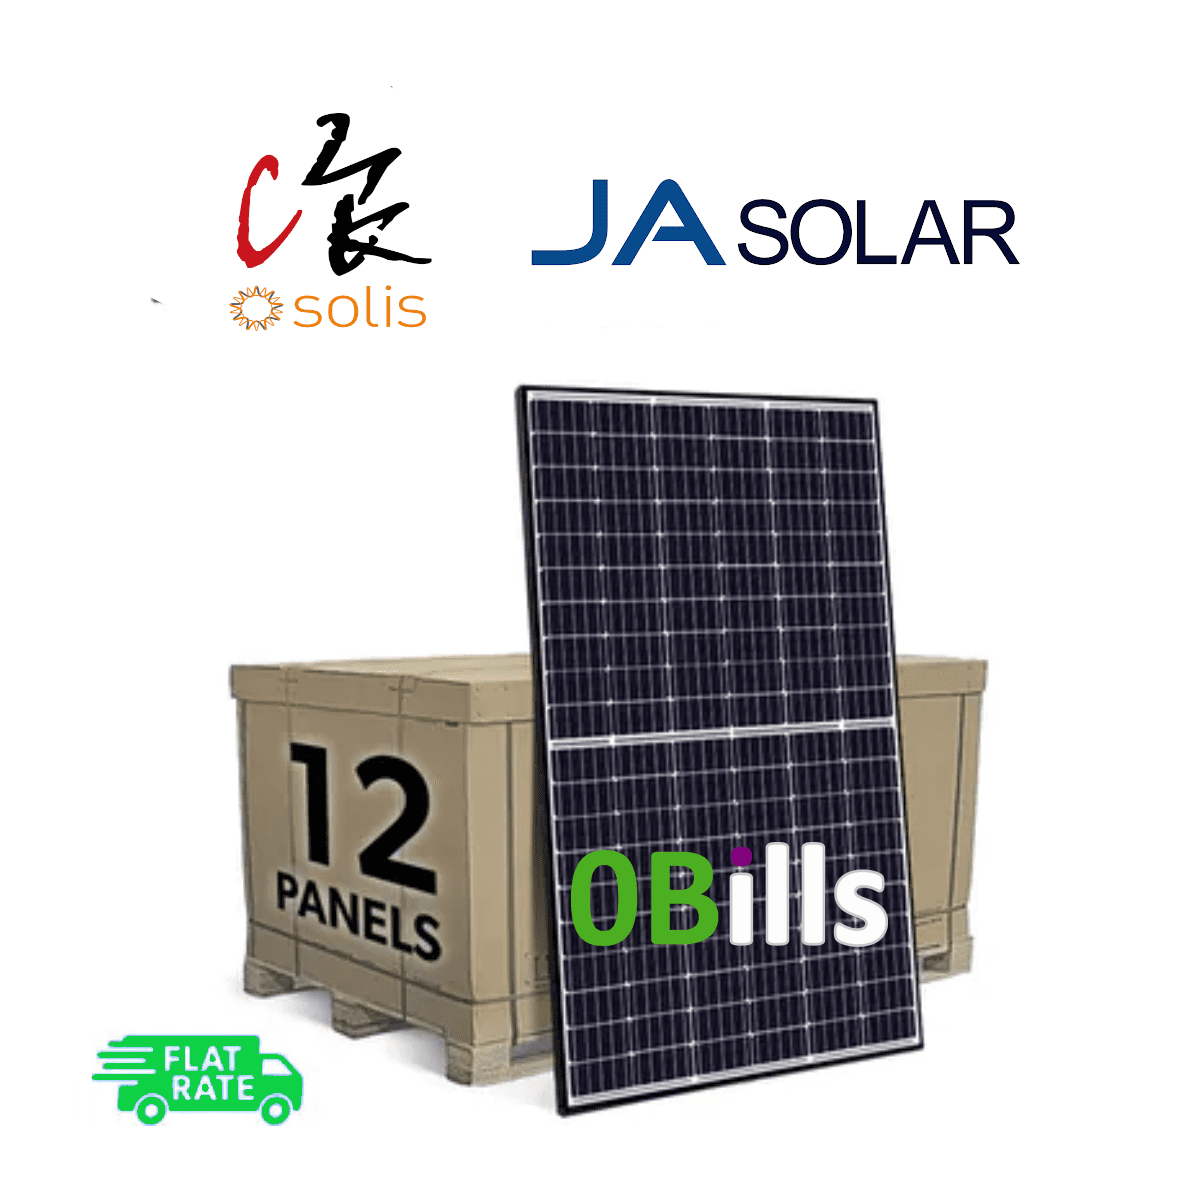 Amazon Solis 4kW Grid Tie DIY Solar Panel System Kit for Sale At Best Price